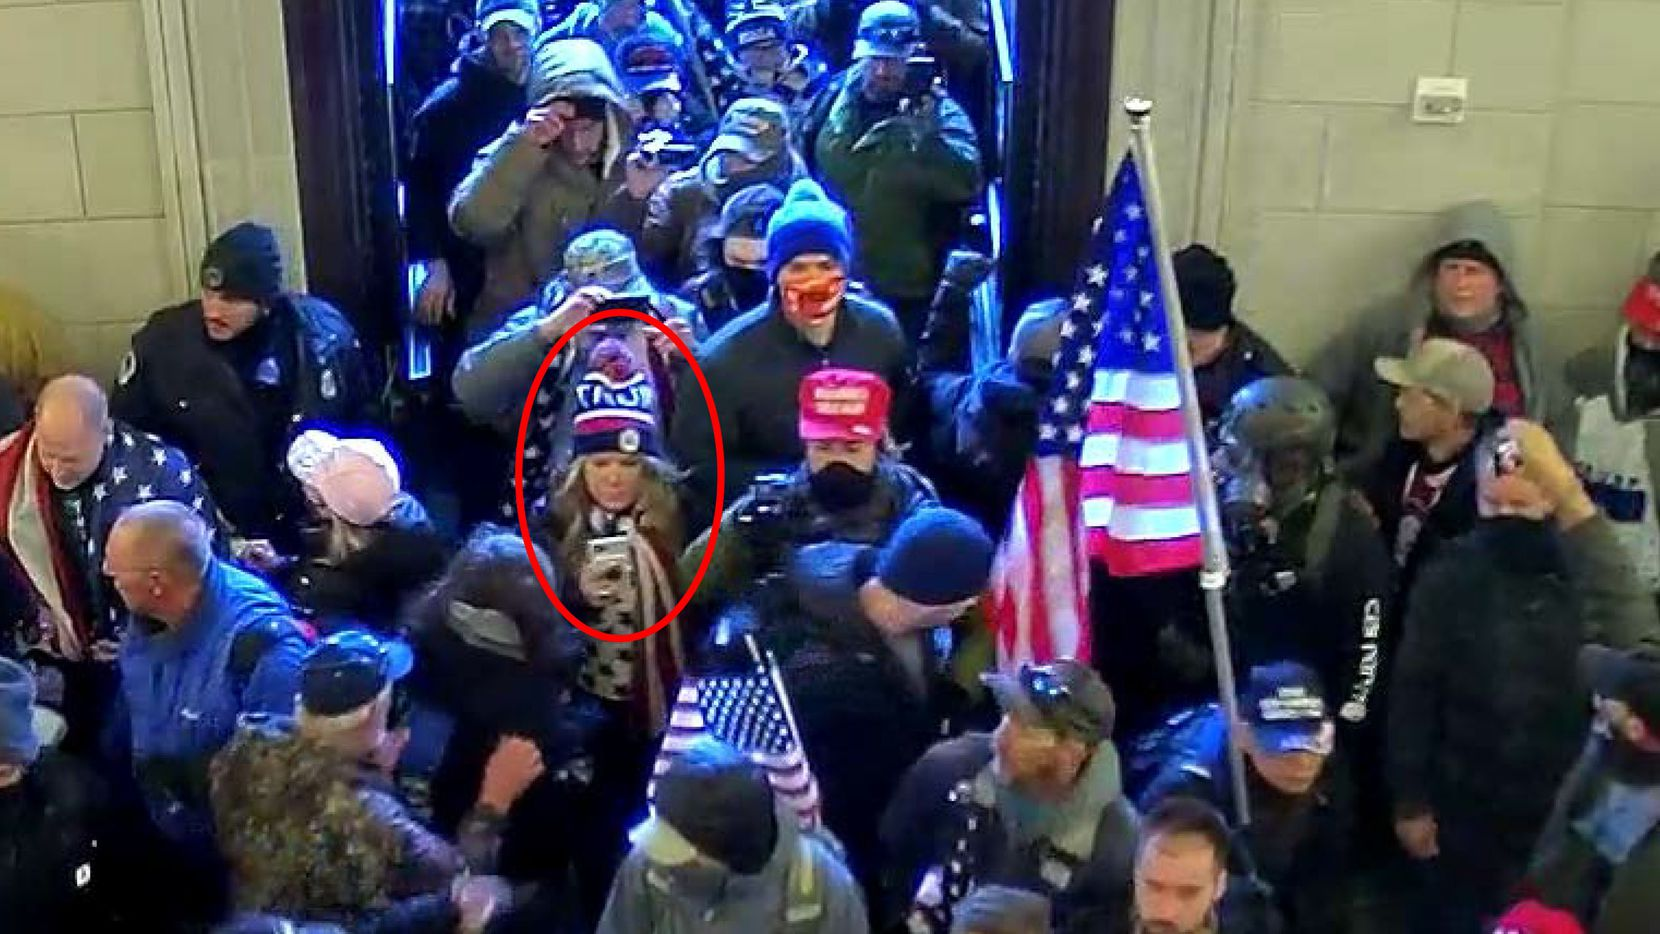 """A security camera surveillance photo included in a FBI criminal complaint filed against Jenna Ryan, of Frisco, which the FBI says shows Ryan (circled in red) entering the U.S. Capitol along with other pro- Donald Trump supporters who raided the building on Jan. 6, 2021 as Congress was meeting to certify the results of President-elect Joe Biden's victory. Jennifer """"Jenna"""" Leigh Ryan, 50, is charged with """"knowingly entering or remaining in any restricted building or grounds without lawful authority"""" and """"disorderly conduct on Capitol grounds,"""" according to the complaint filed in U.S. District Court for the District of Columbia. It alleges that she engaged in """"disruptive conduct"""" in the Capitol with the """"intent to impede, disrupt, or disturb the orderly conduct of a session of Congress."""""""